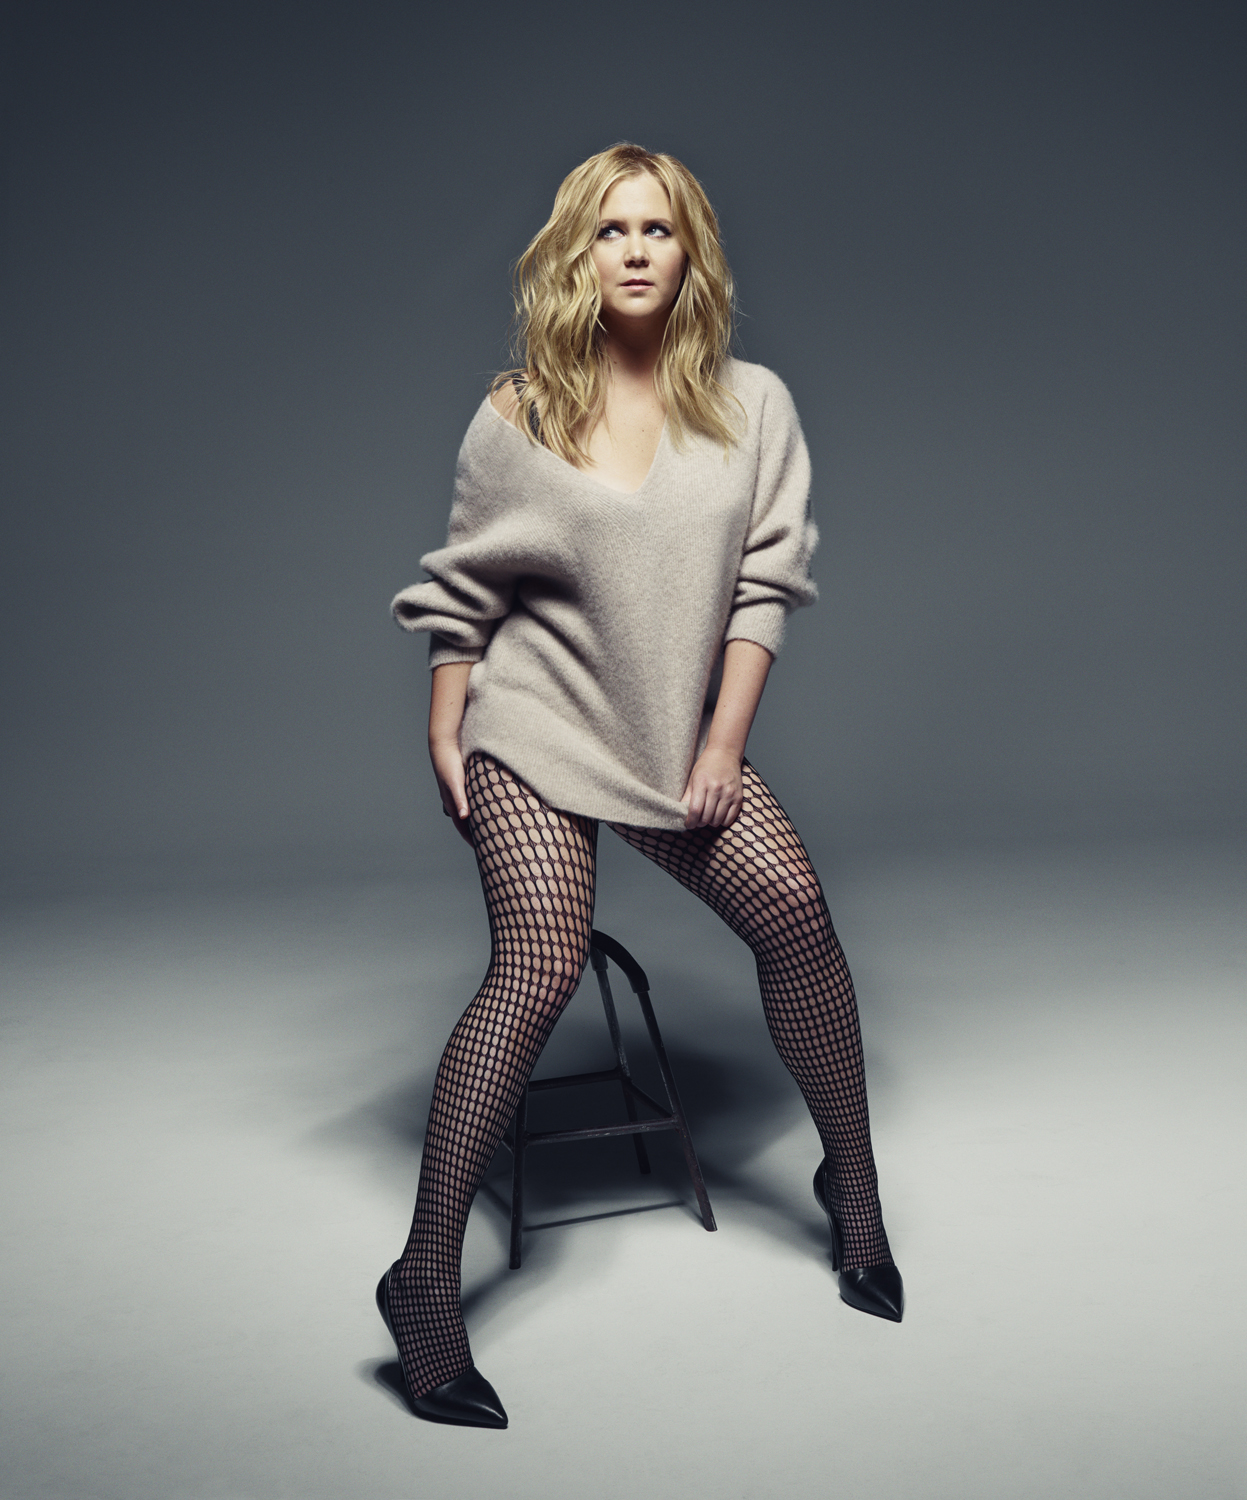 Amy Schumer for Marie Claire